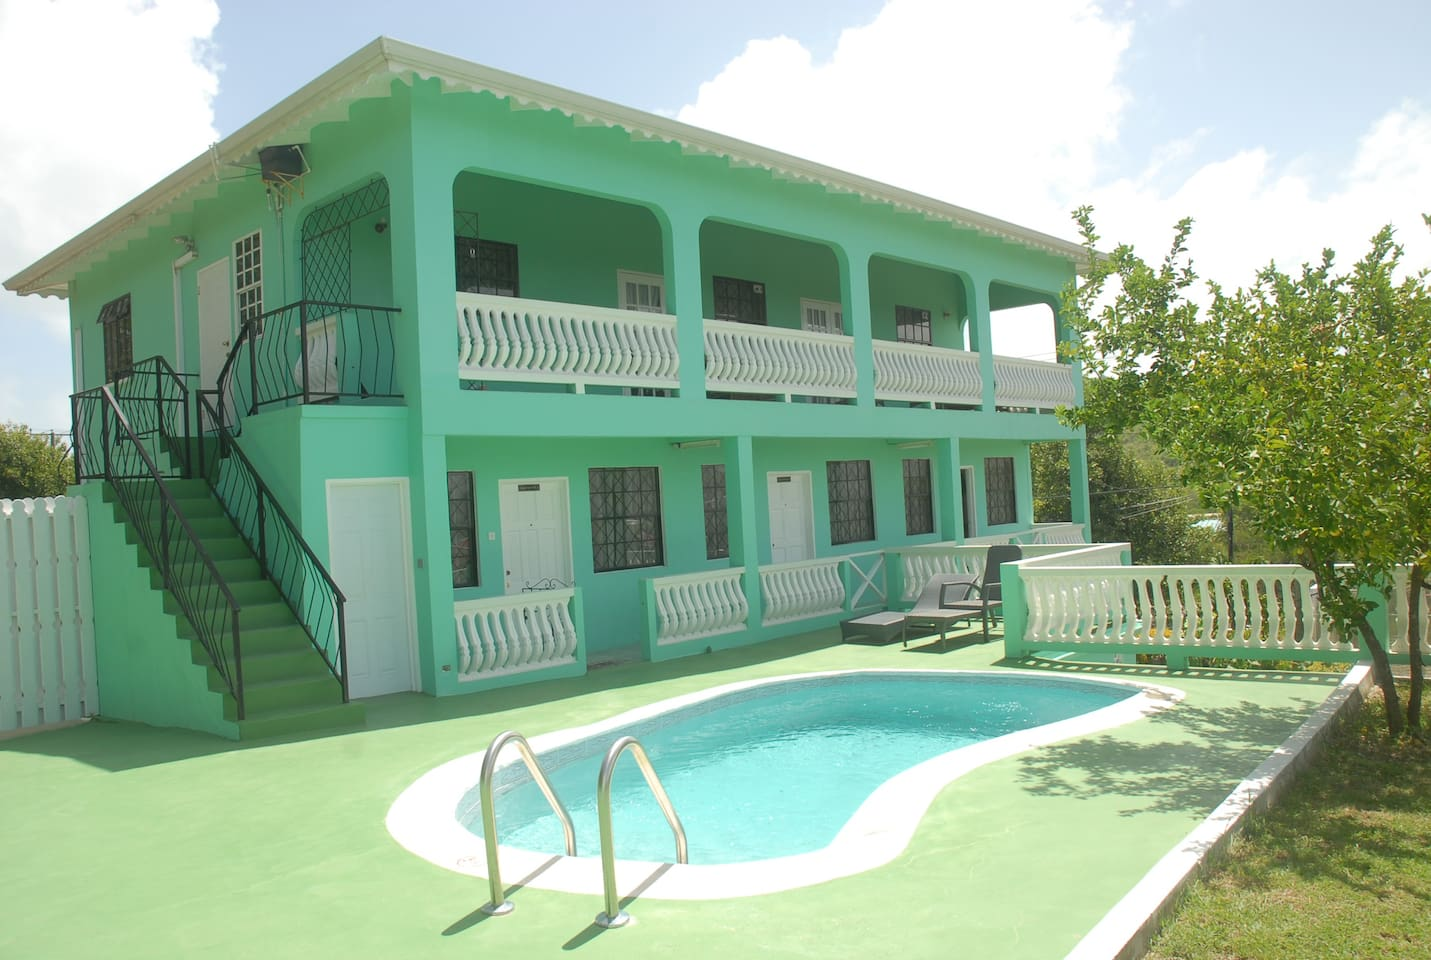 Belle Kaye main building consisting of 3x1 bedroom and 1x3 bedrooms apartments